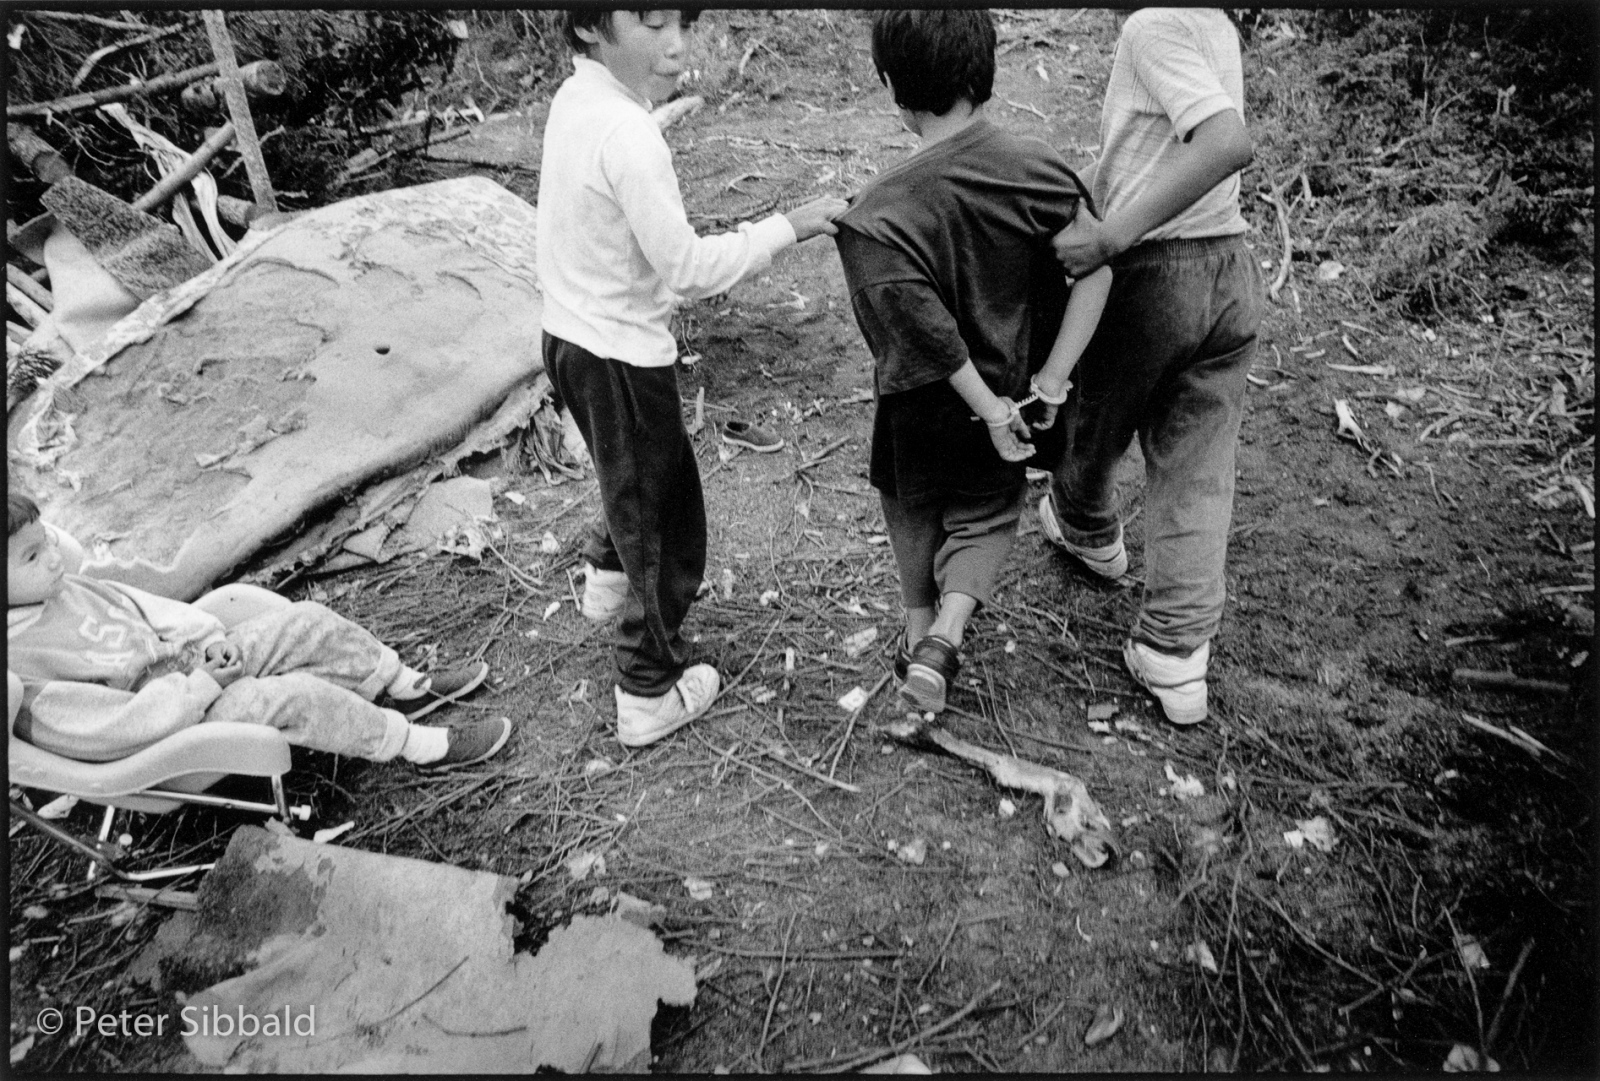 Art and Documentary Photography - Loading 012-boy_in_handcuffs_led_away.jpg